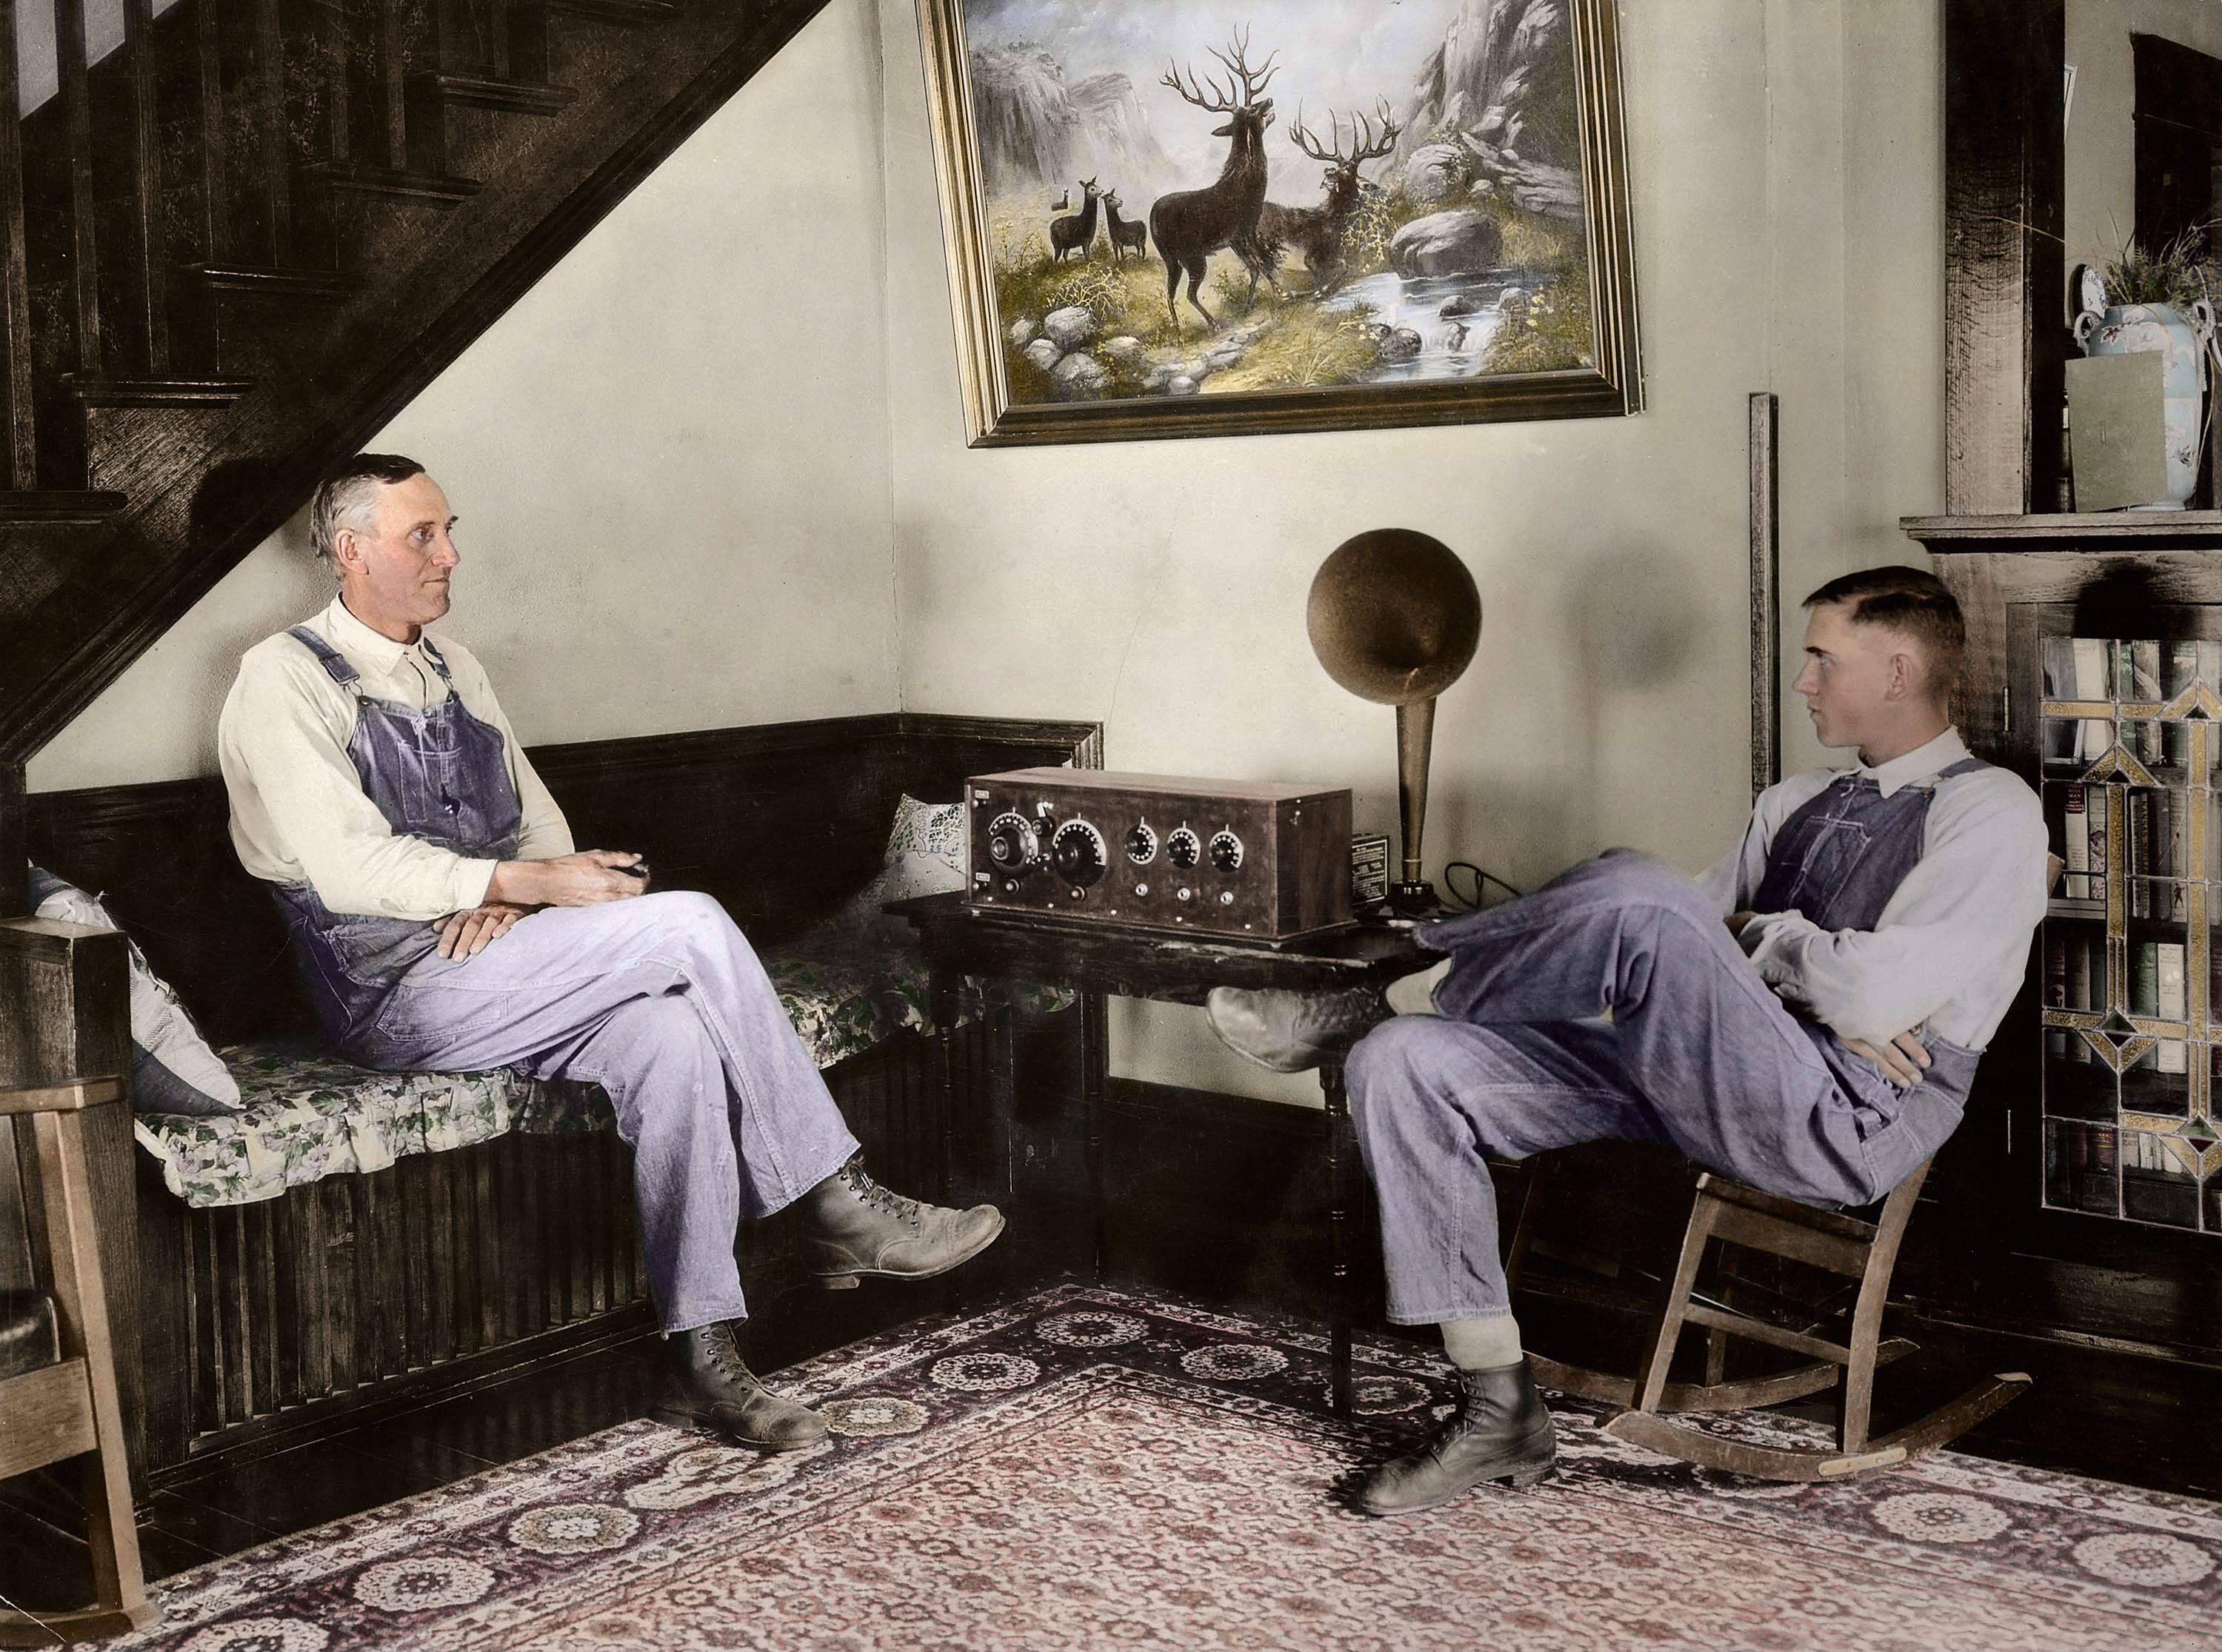 Farmer and his son listening in the evenings, Shawnee county, Kansas, September 23 or 24, 1924. George W. Ackerman (1884-1962).